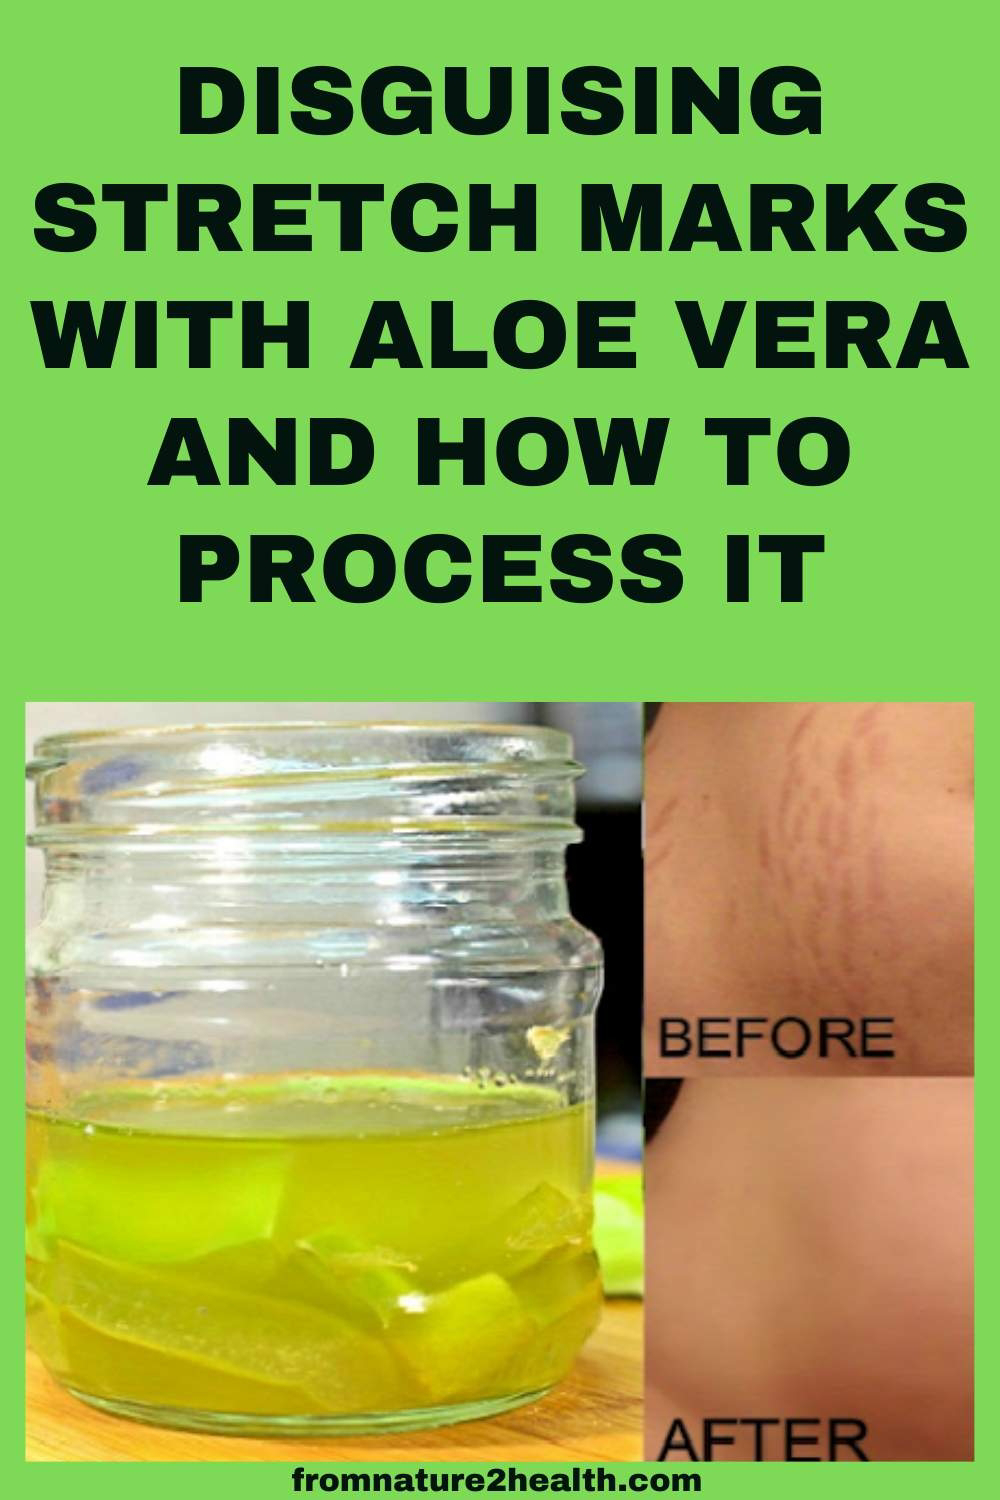 Disguising Stretch Marks With Aloe Vera and How to Process It